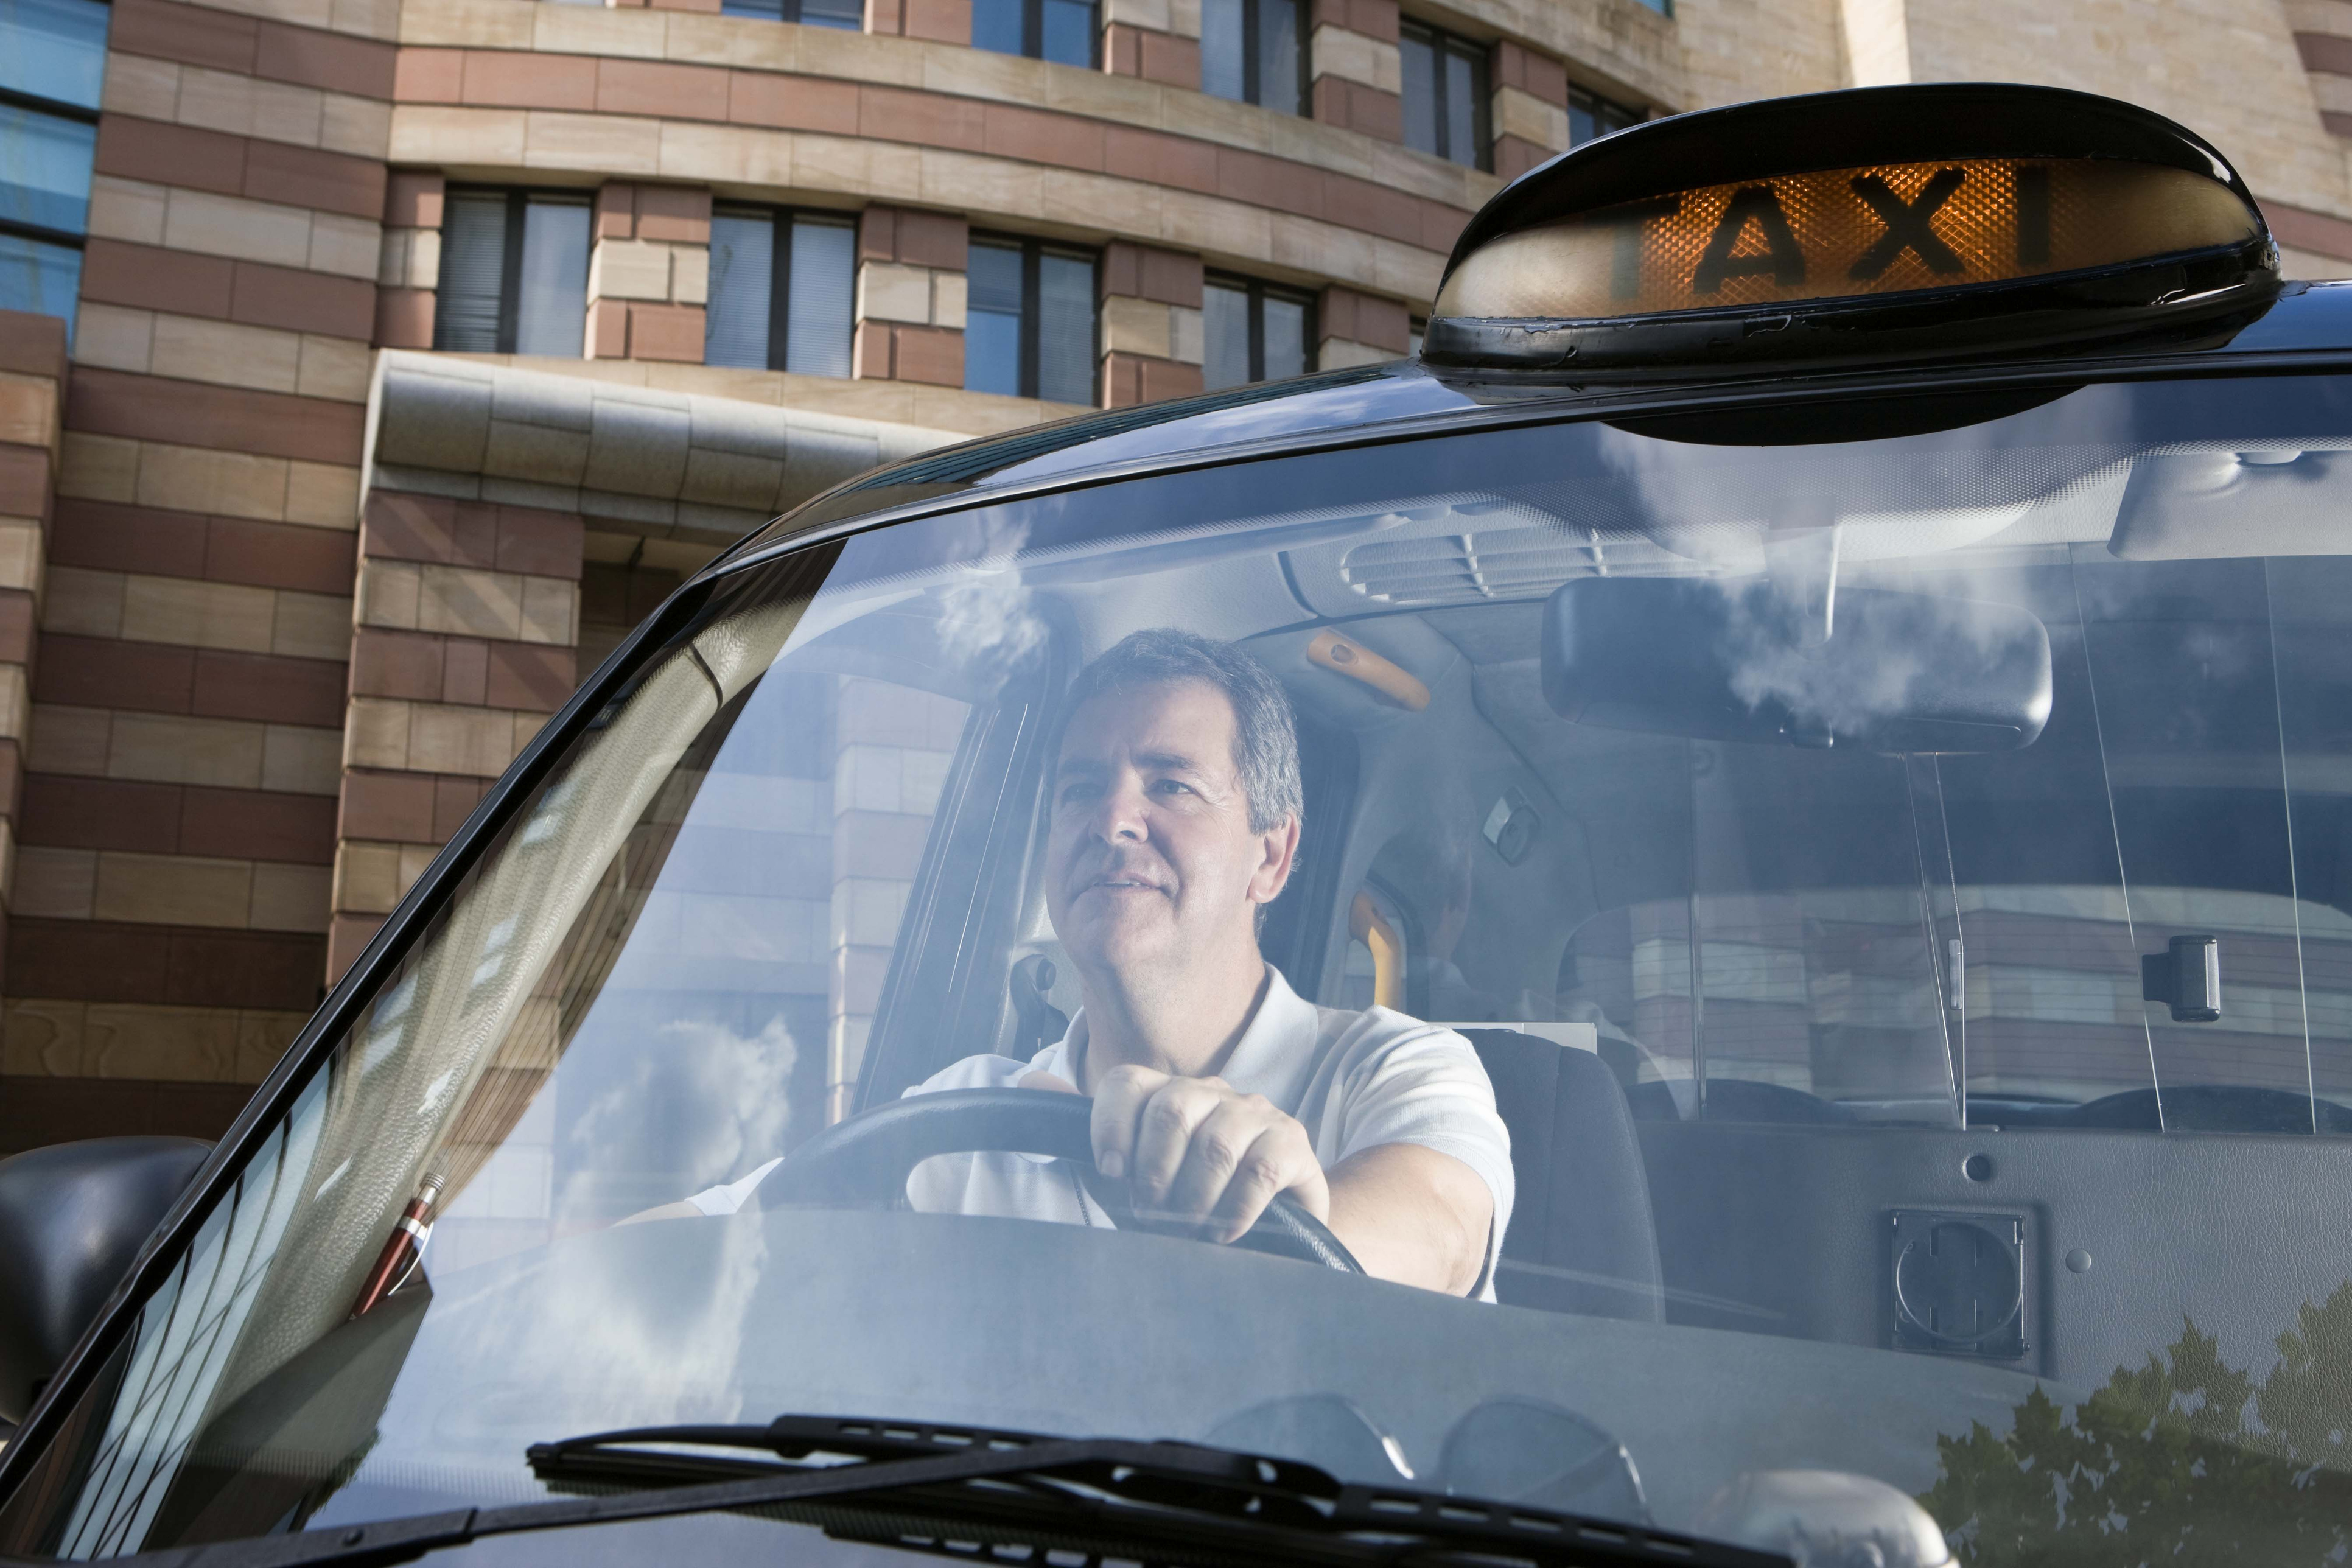 A taxi driver looking happy driving his black cab